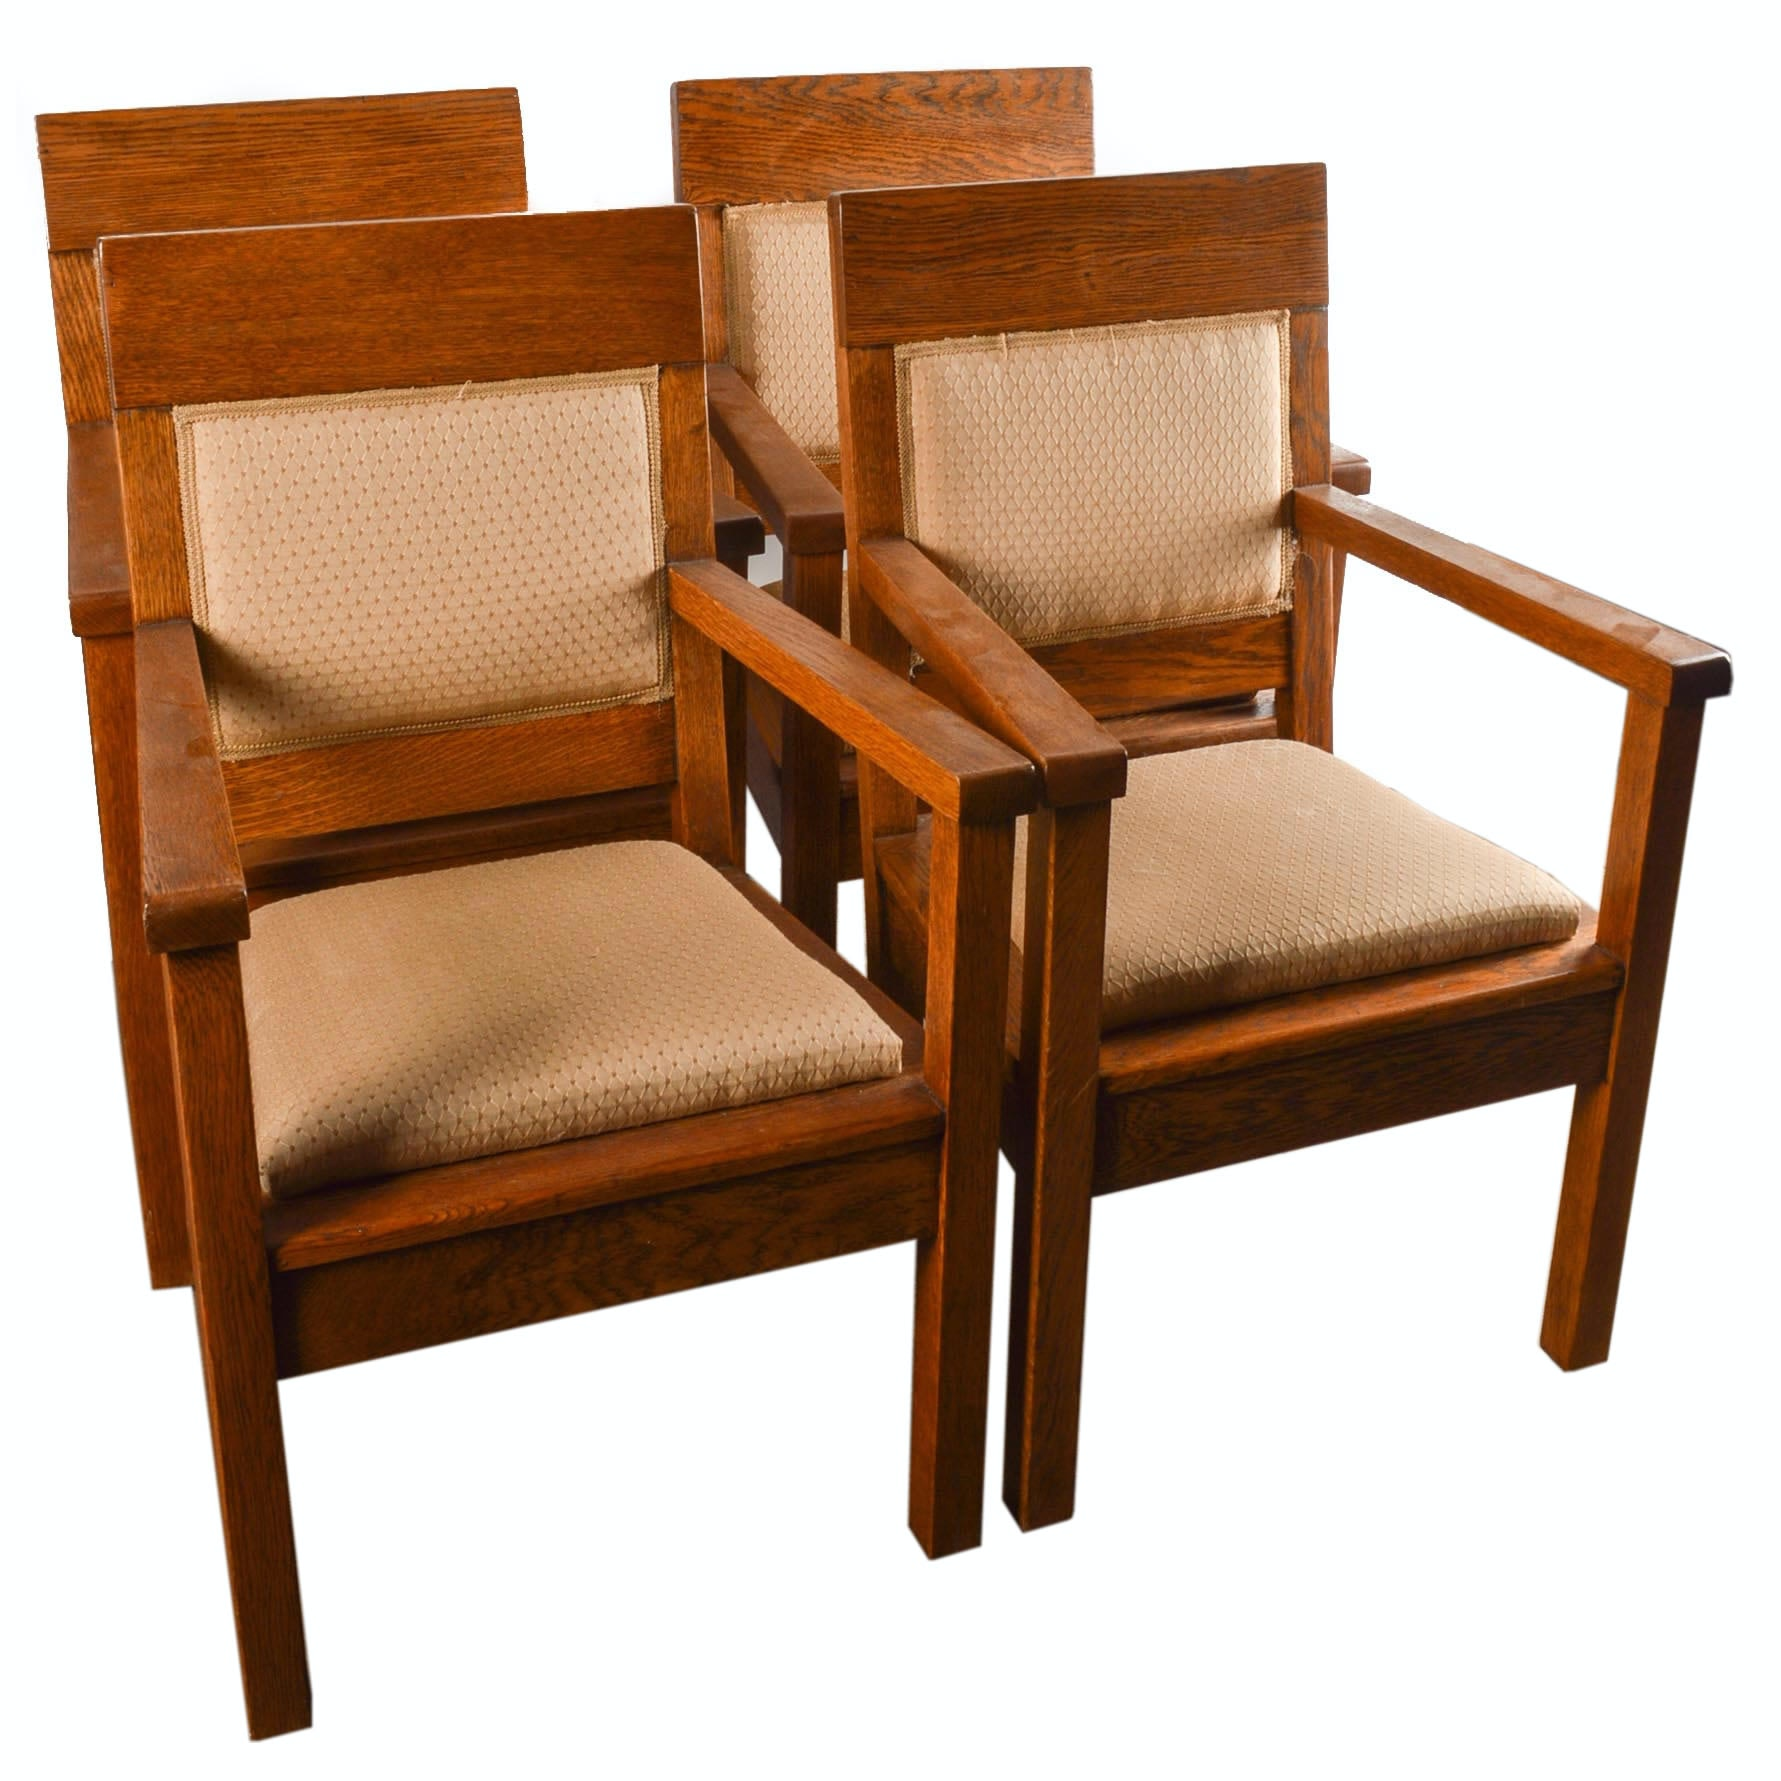 Mission-Style Oak Armchairs